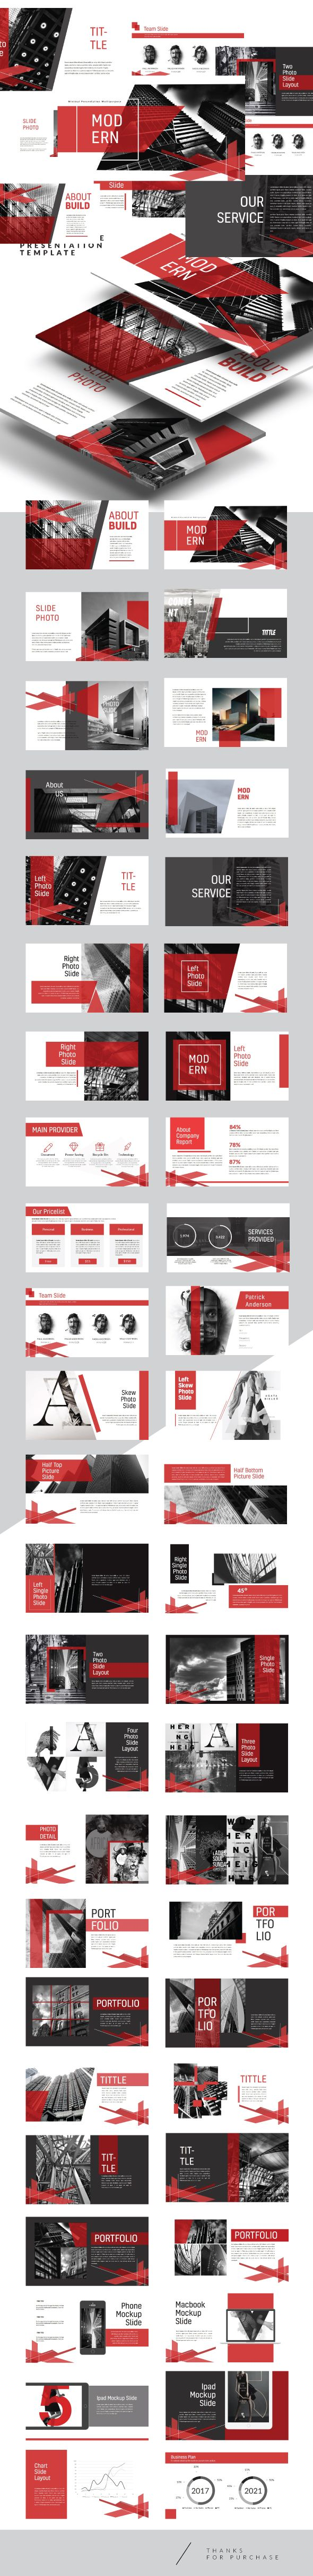 Arch - Creative Multipurpose PPT Template